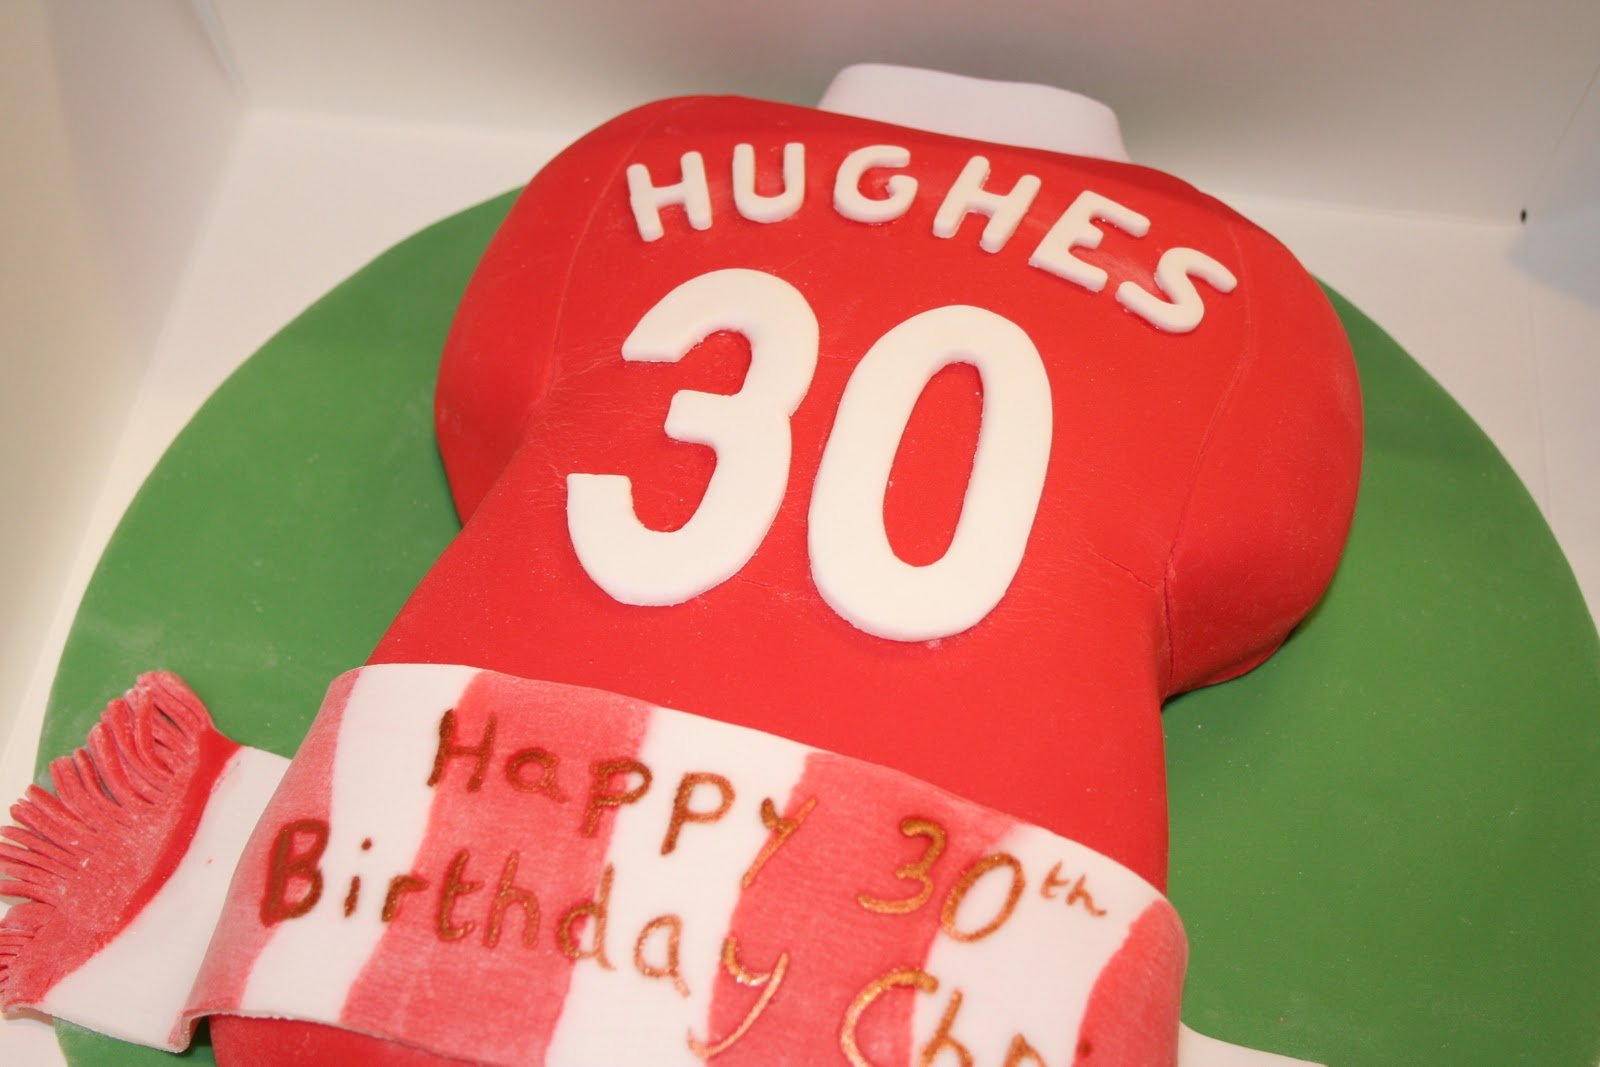 A Manchester United Fan Turning 30 Deserved Personalised Cake It Is Vanilla Sponge With Strawberry Jam And Buttercream Filling Decorated Using